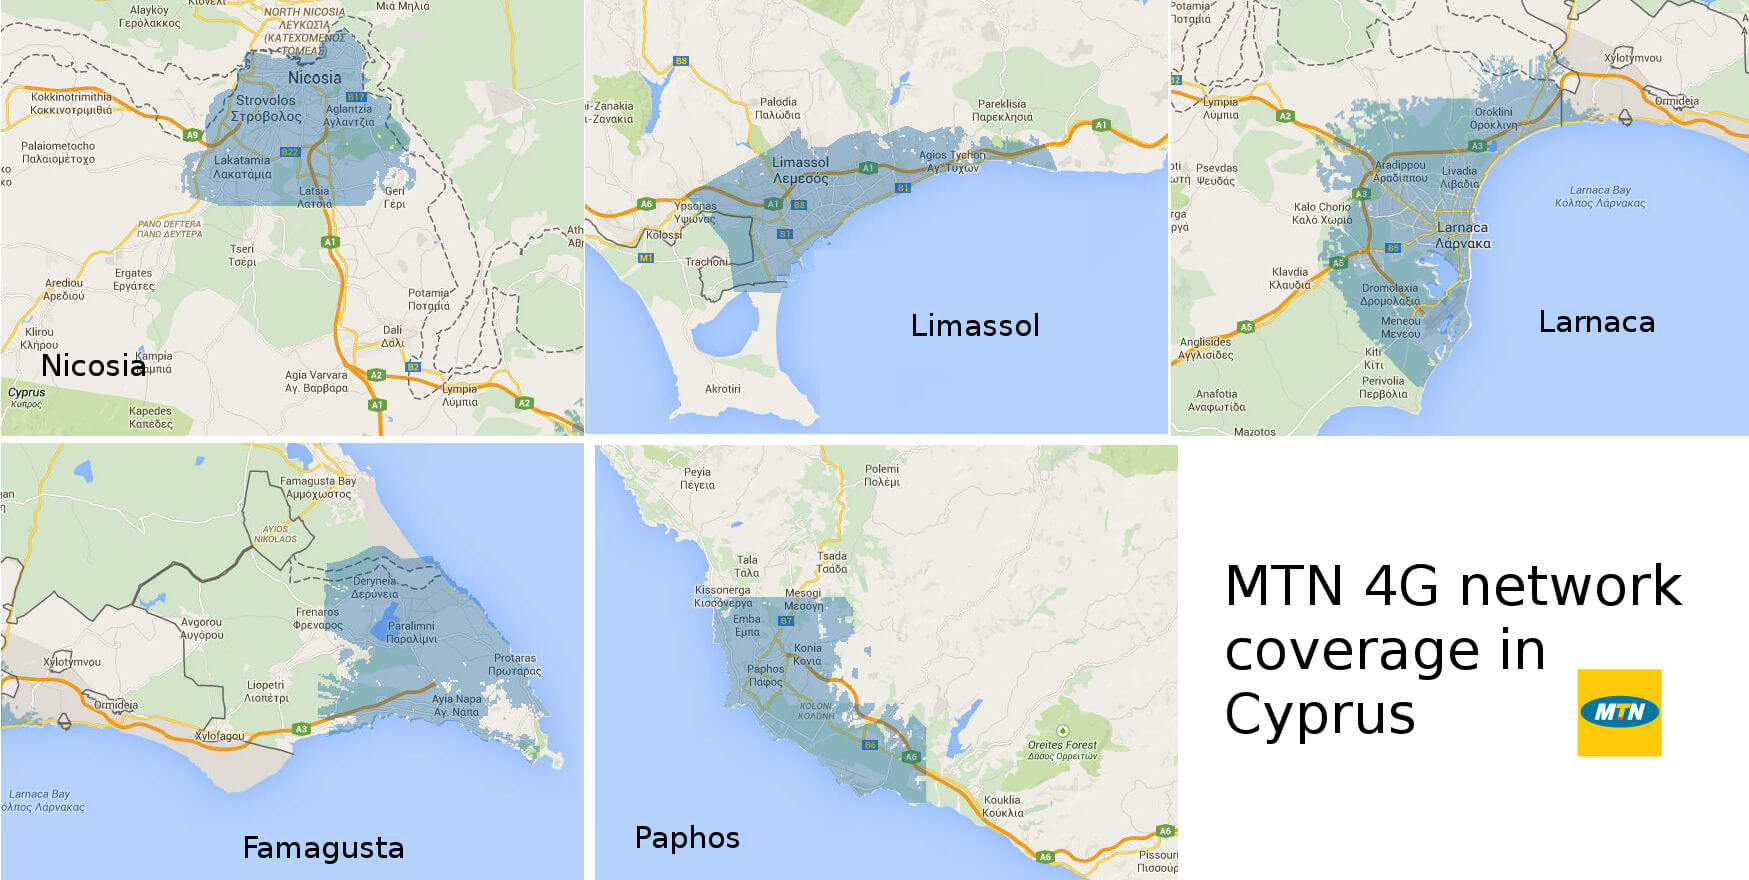 MTN's 4G network coverage in Cyprus